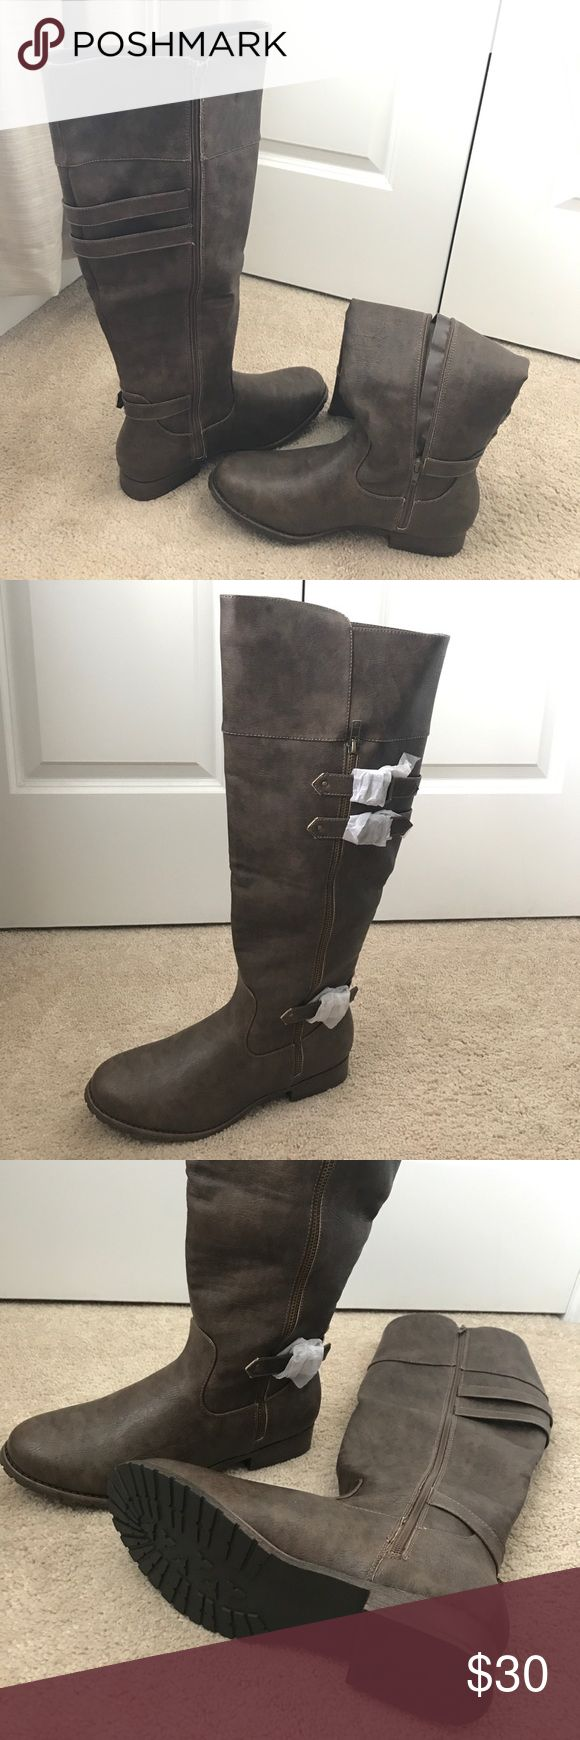 Selling this JustFab Knee High Boots Wide Calf Brown Leather 10 on Poshmark! My username is: agraefy. #shopmycloset #poshmark #fashion #shopping #style #forsale #JustFab #Shoes